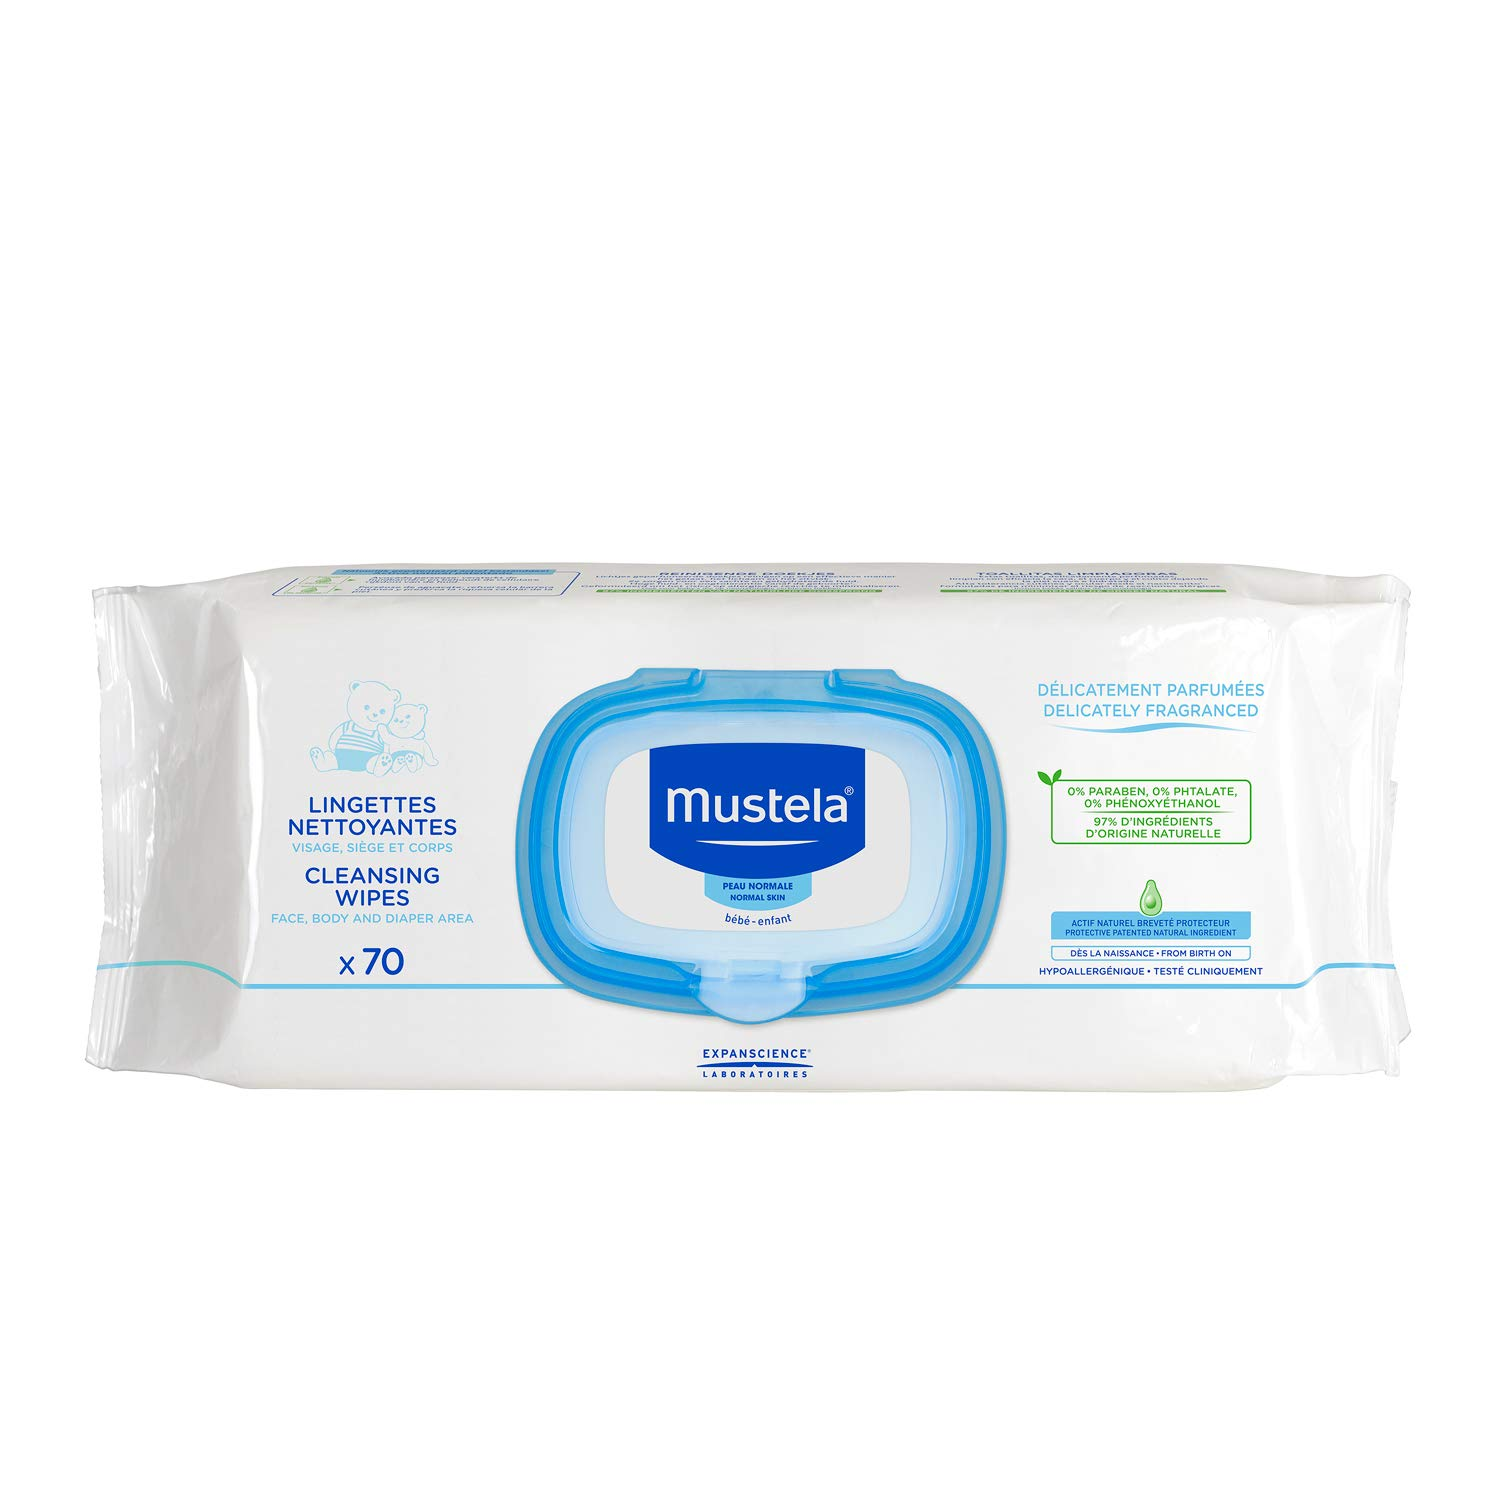 Mustela Cleansing Wipes, Ultra Soft Baby Wipes with Natural Avocado Perseose & Aloe Vera, Lightly Scented, Available in 1 Pack (70 Count), 3 Pack (210 Count) or 6 Pack (420 count)